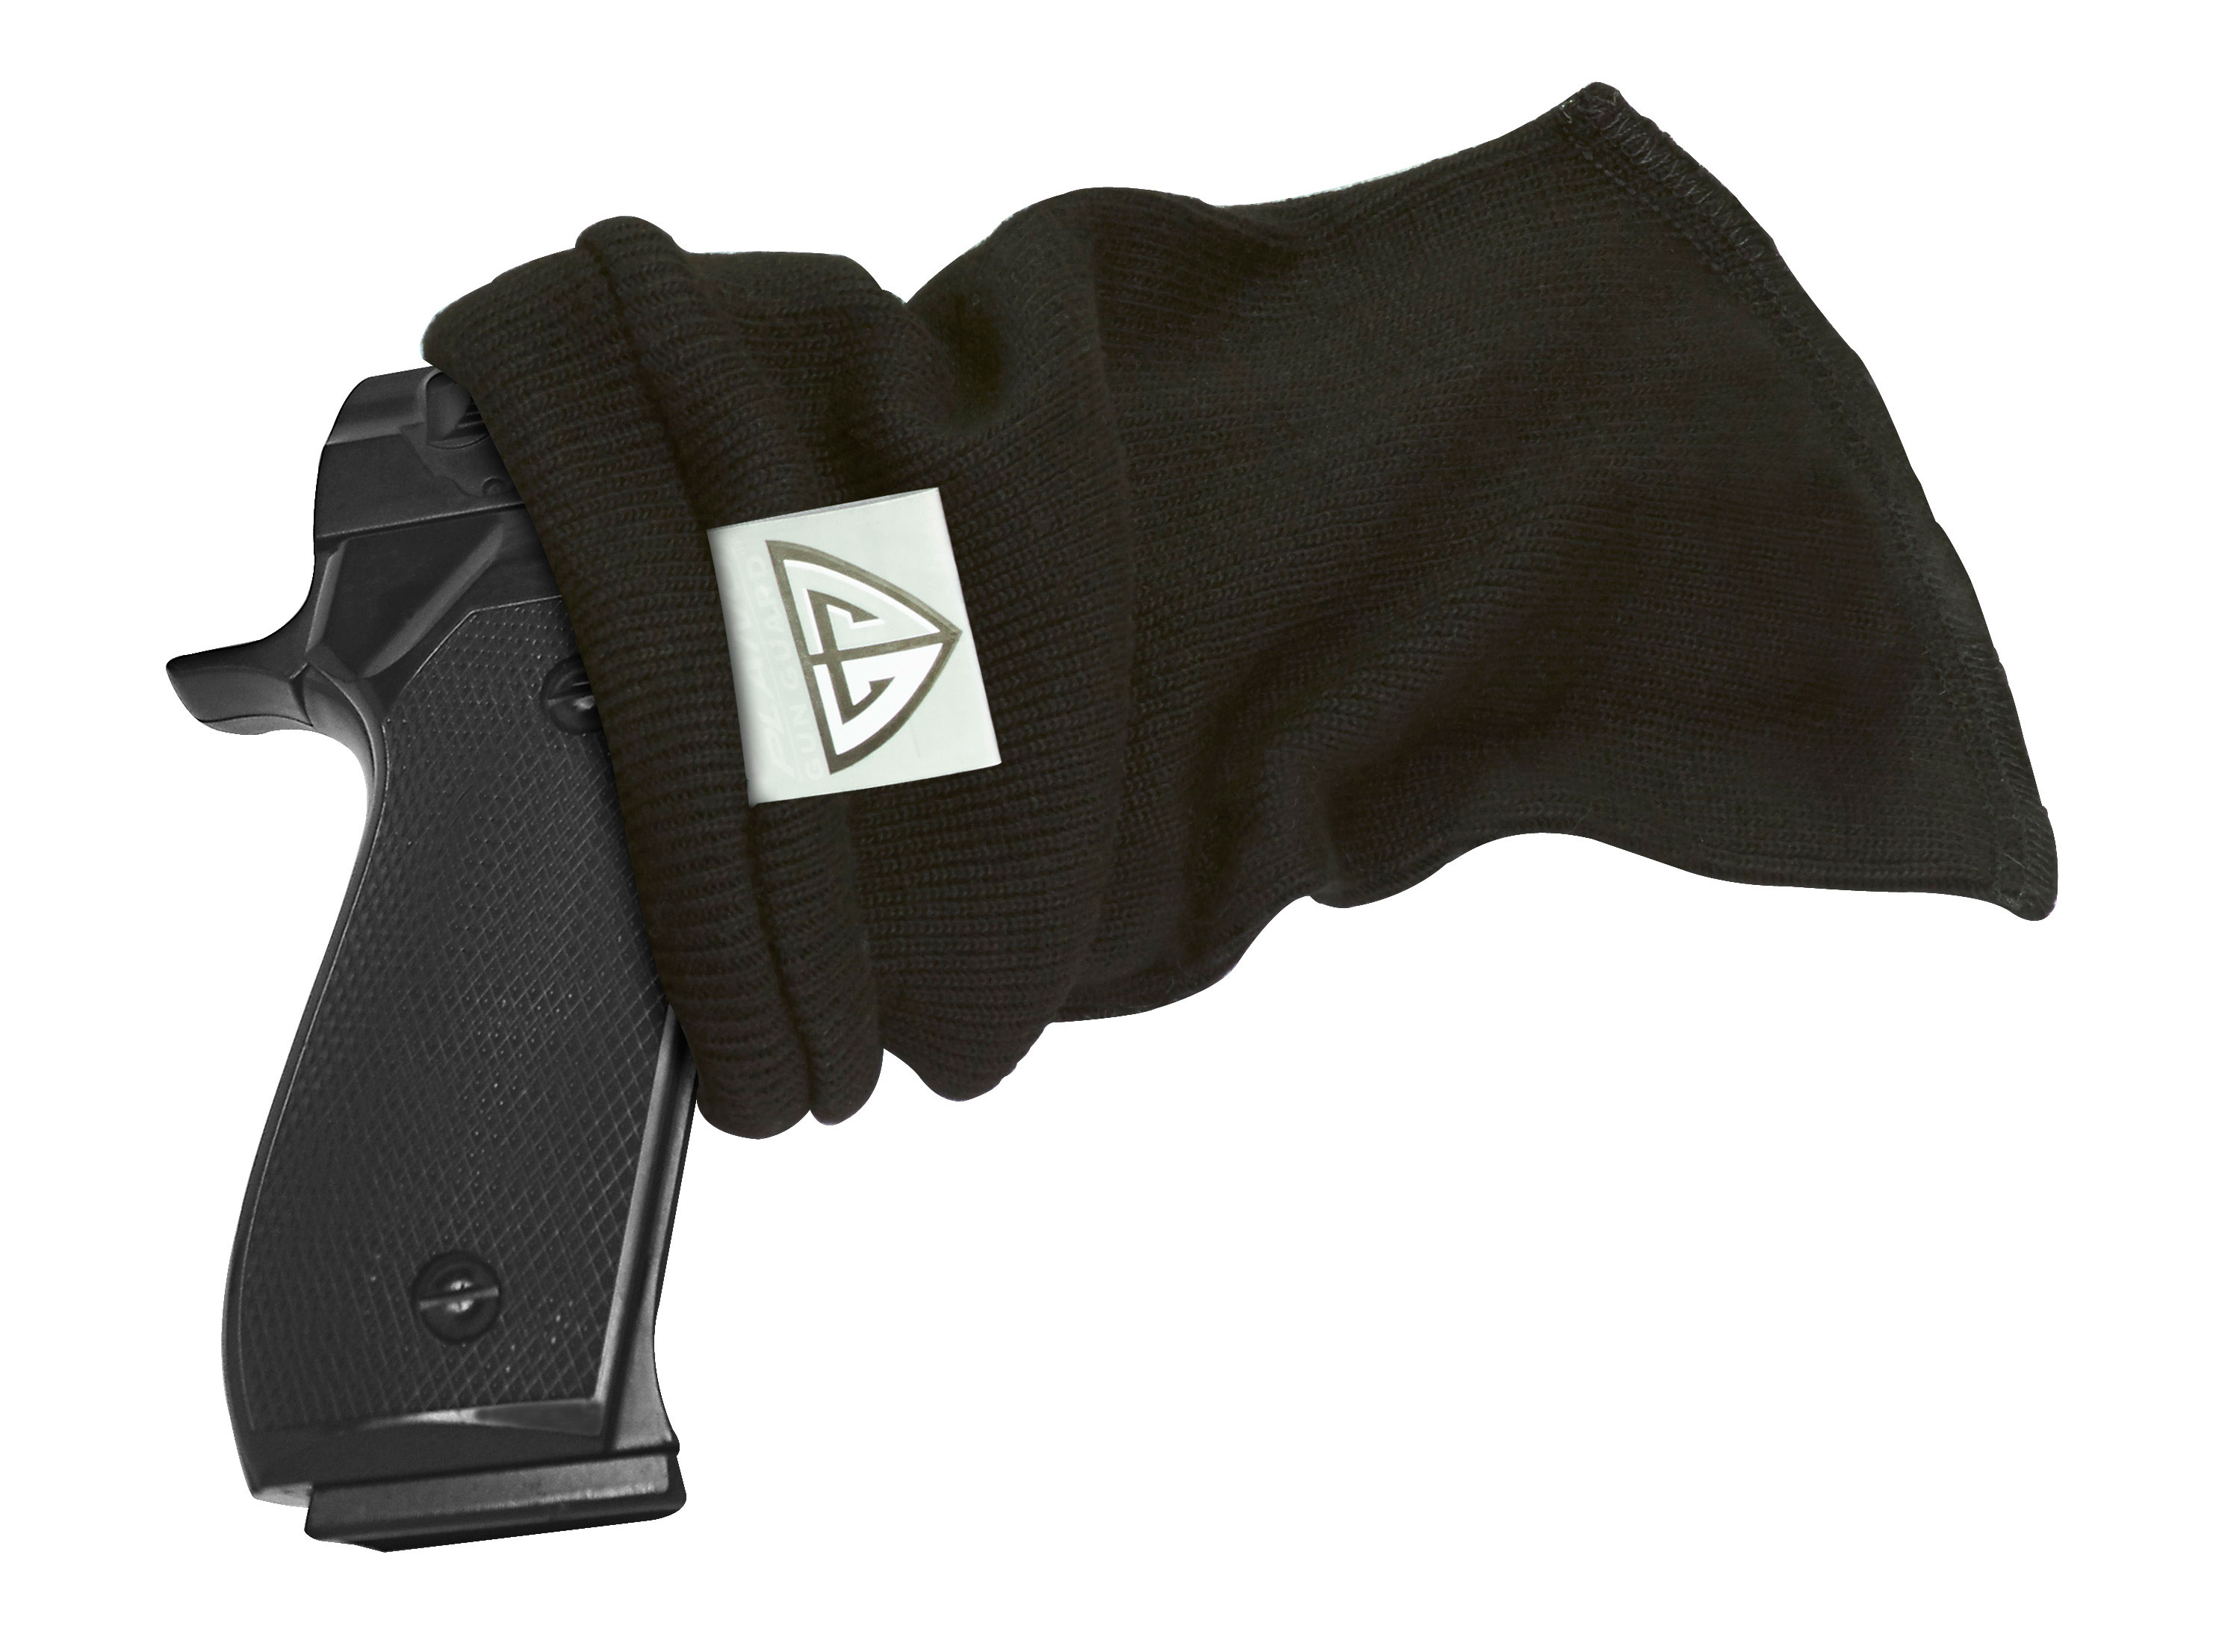 Plano Gun Guard Gun Socks